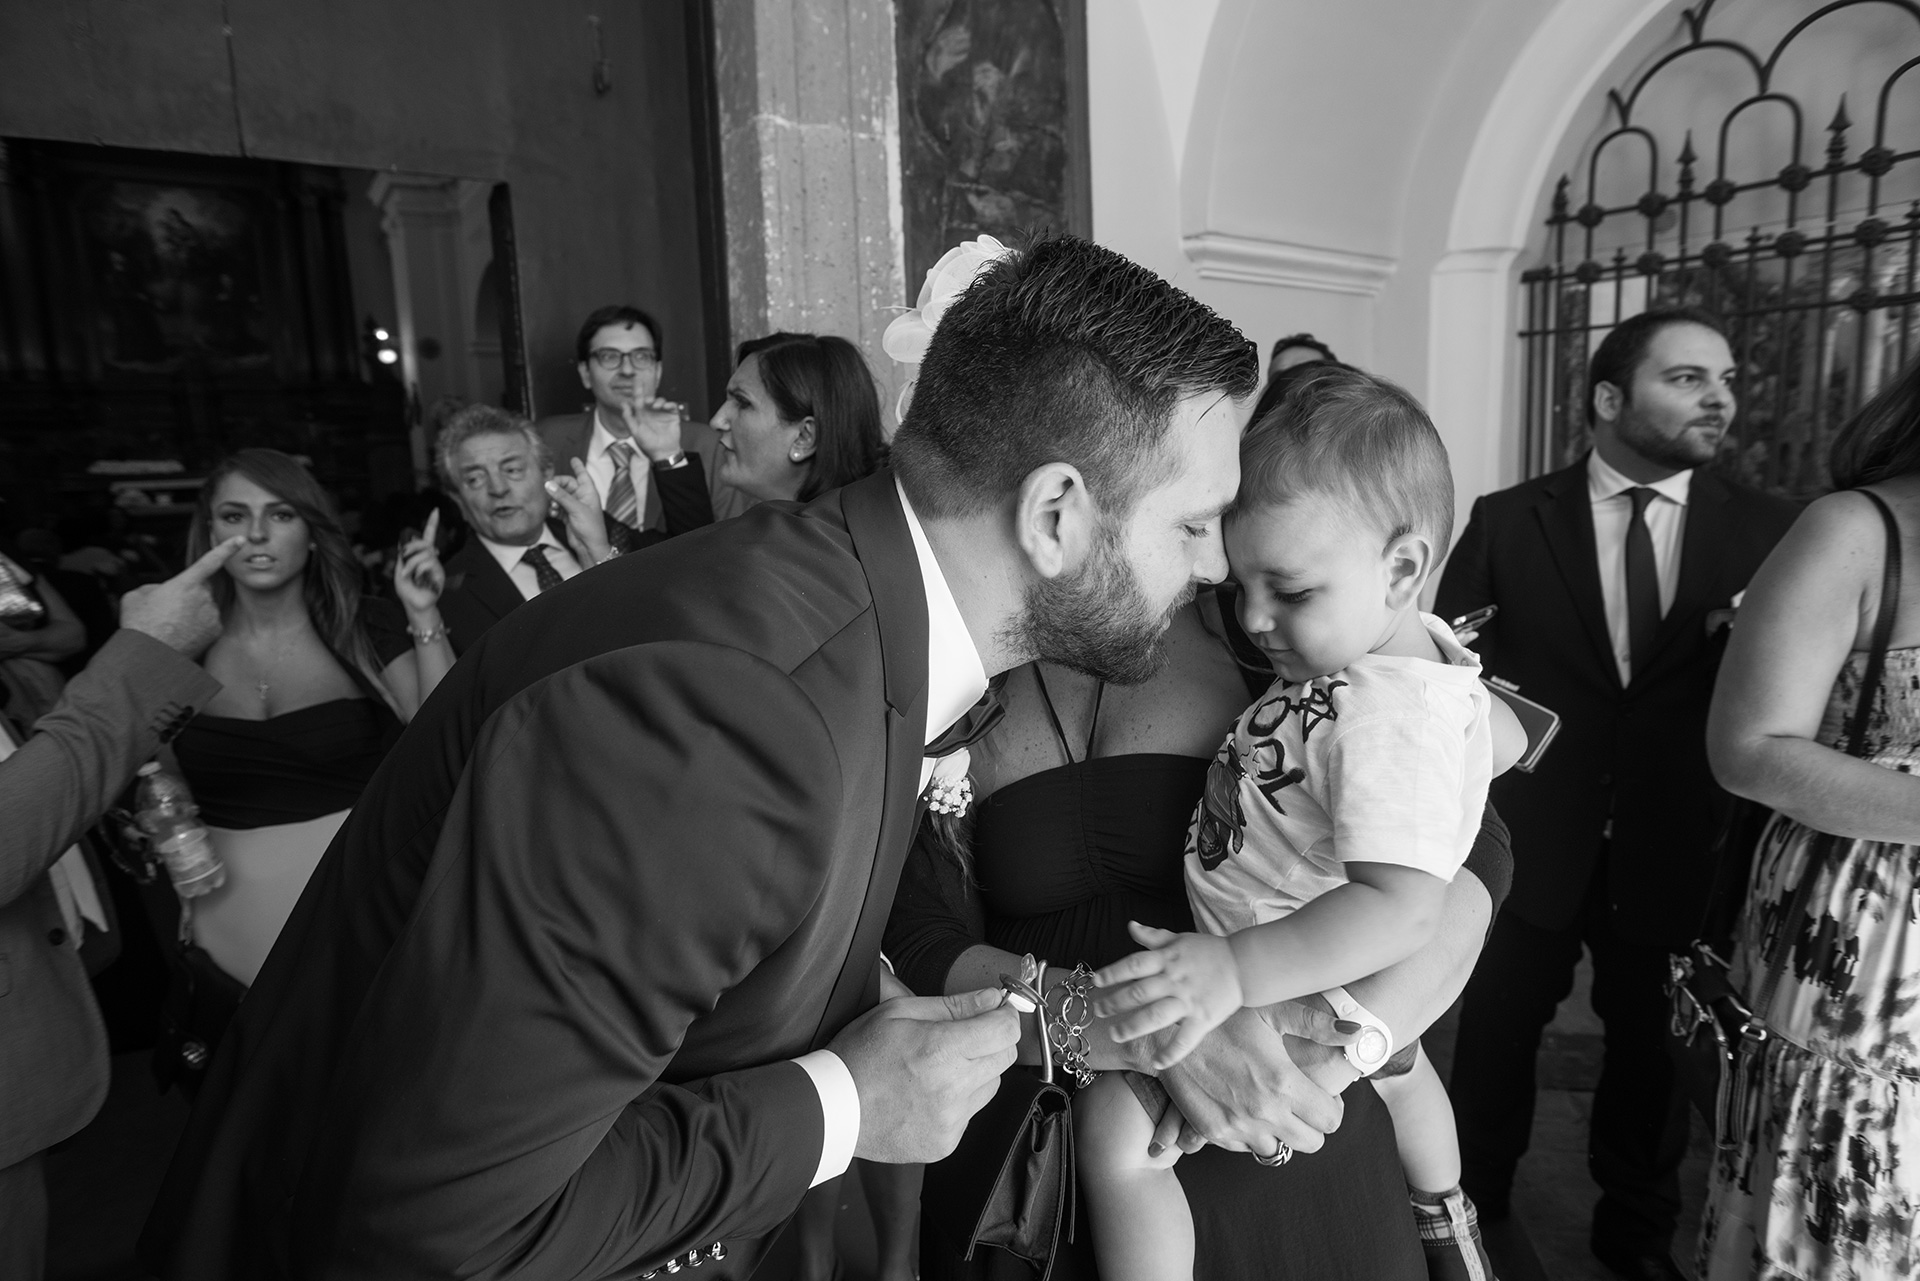 Wedding: Stefano Cardone Photographer Reportage